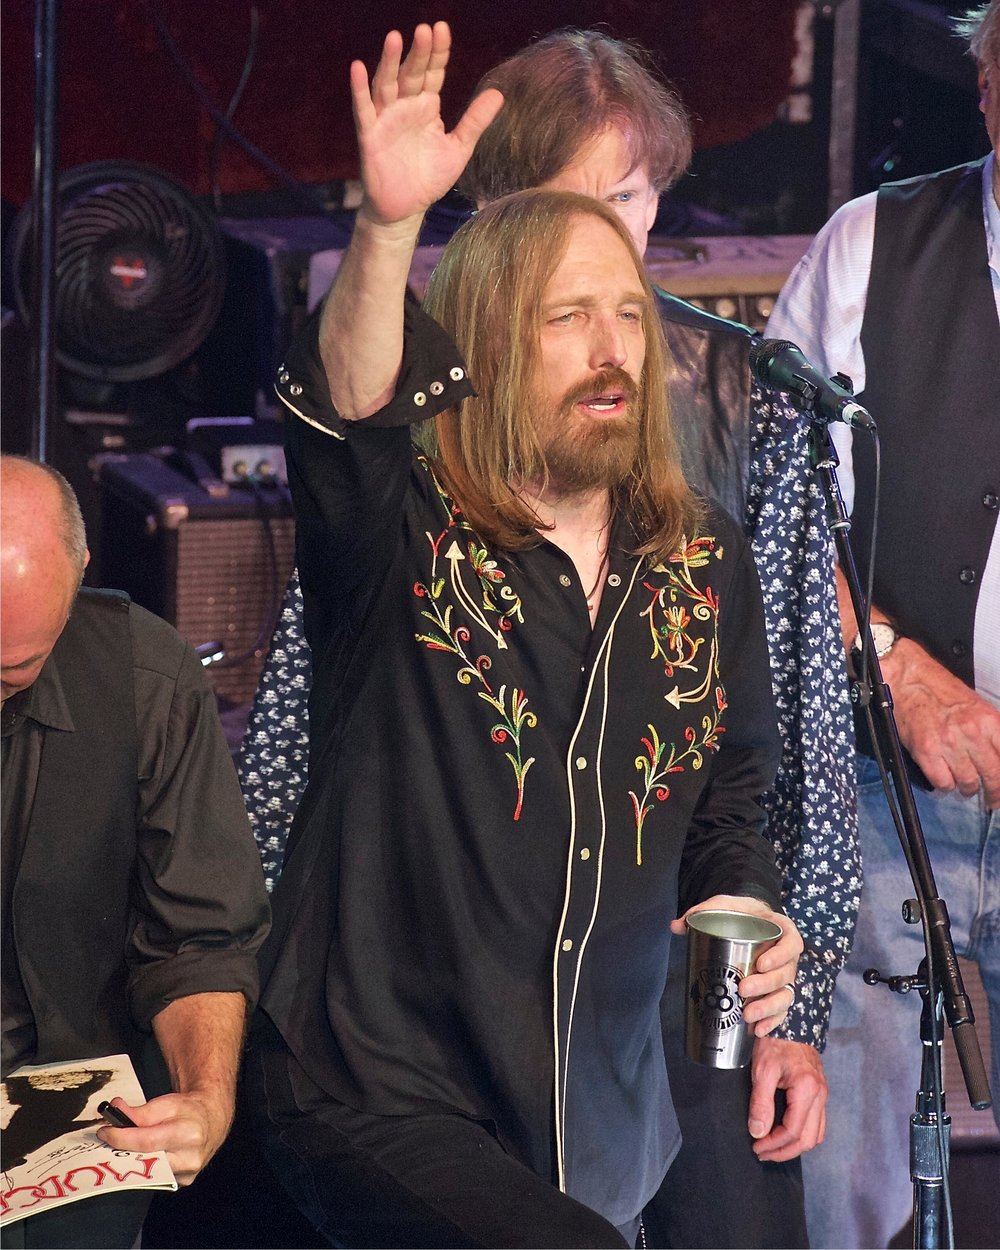 Tom Petty with a steel cup. Photo by Clay Holt.